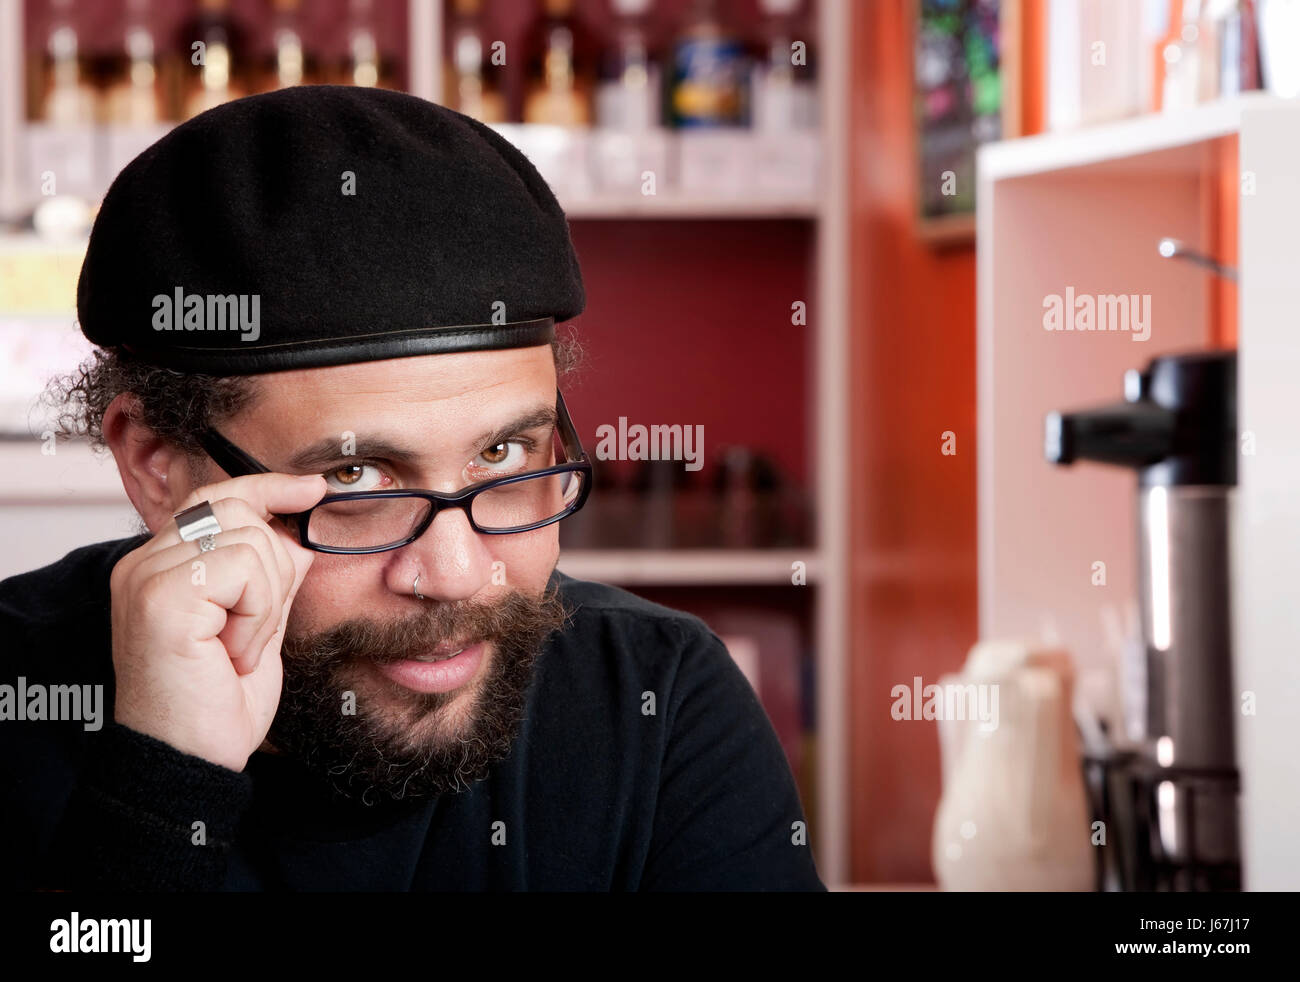 37ed25228928f male masculine adult beard handsome adults beret goatee man cafe restaurant  - Stock Image